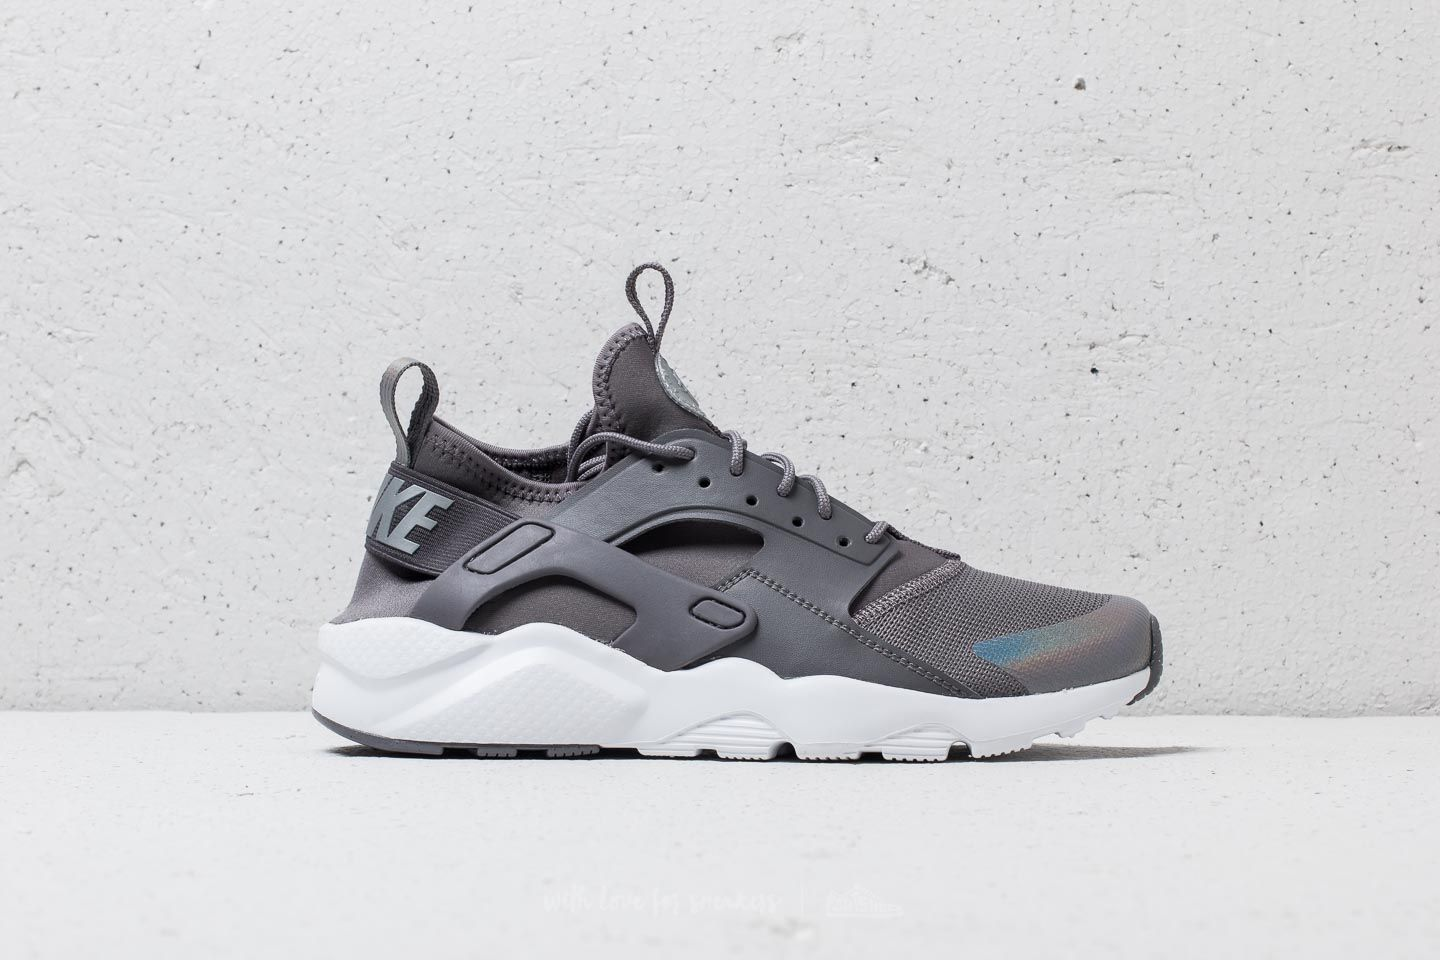 Nike Air Huarache Run Ultra GS Gunsmoke  Gunsmoke at a great price 106 € buy e1ca85127a9